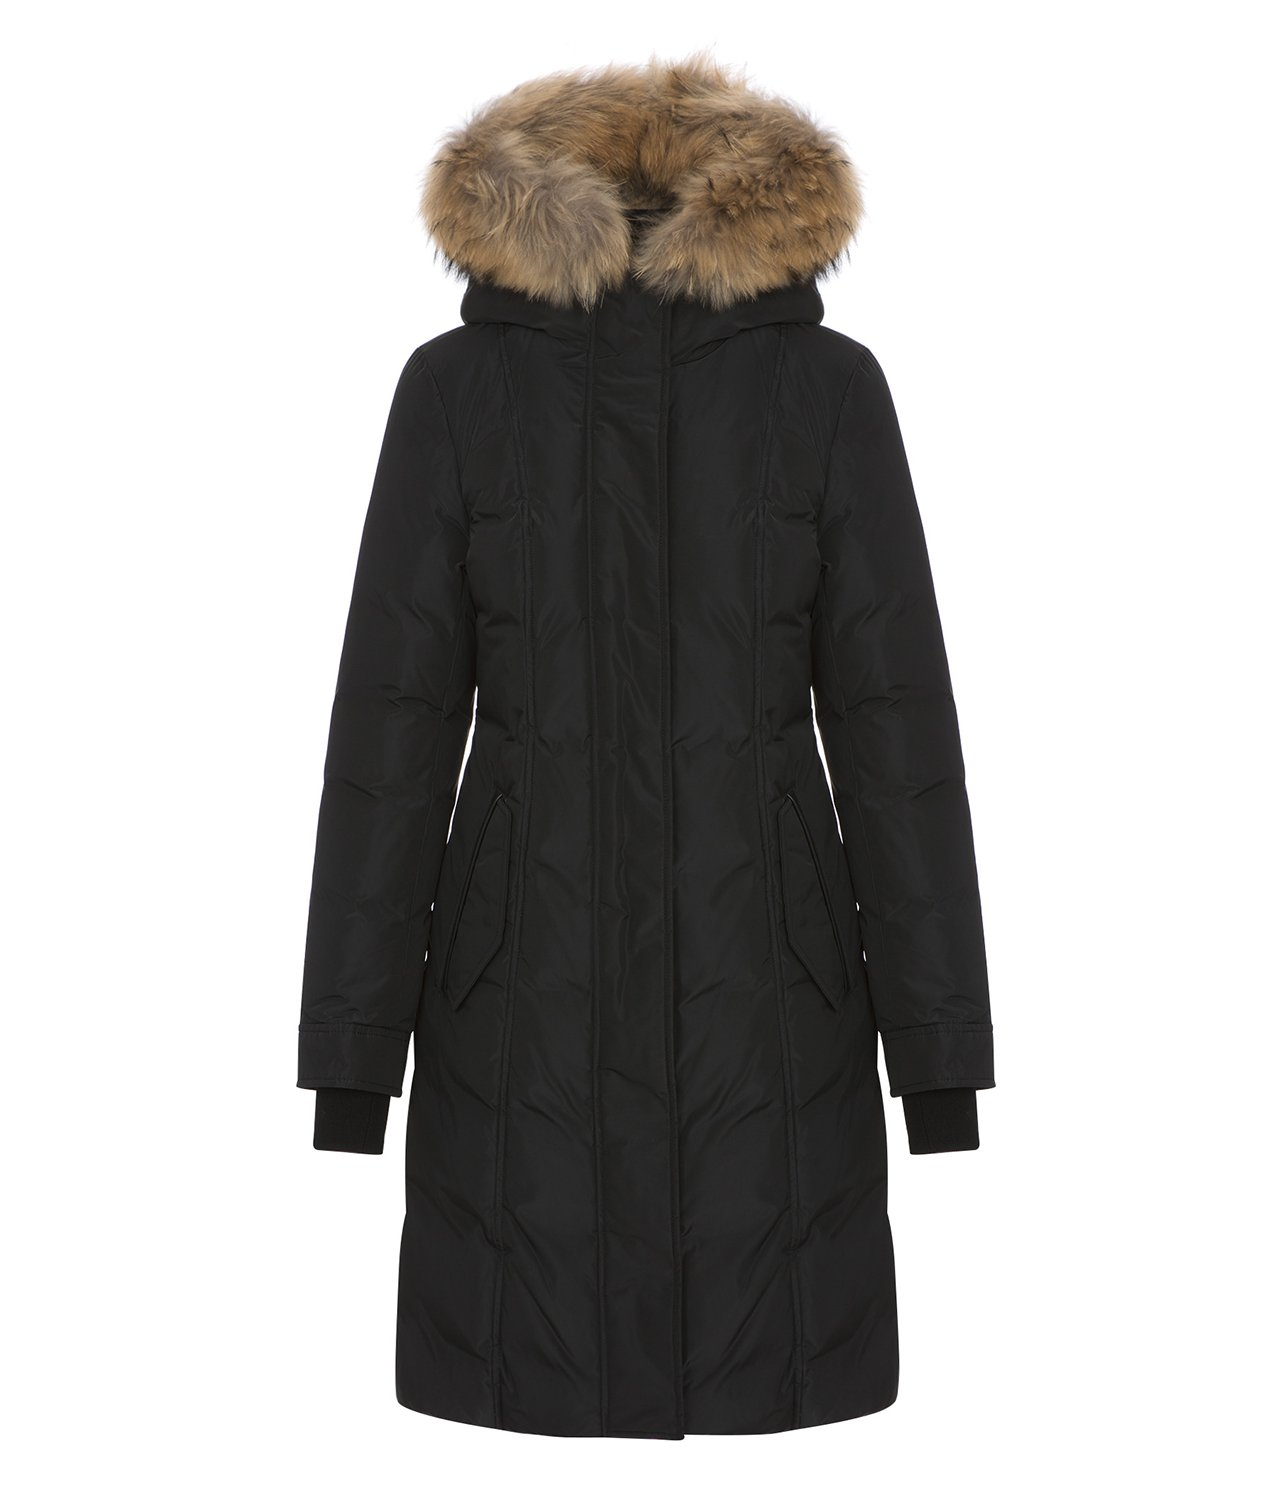 Mackage Ladies Fur Hooded Down Parka, harlin, Black (X-Small)